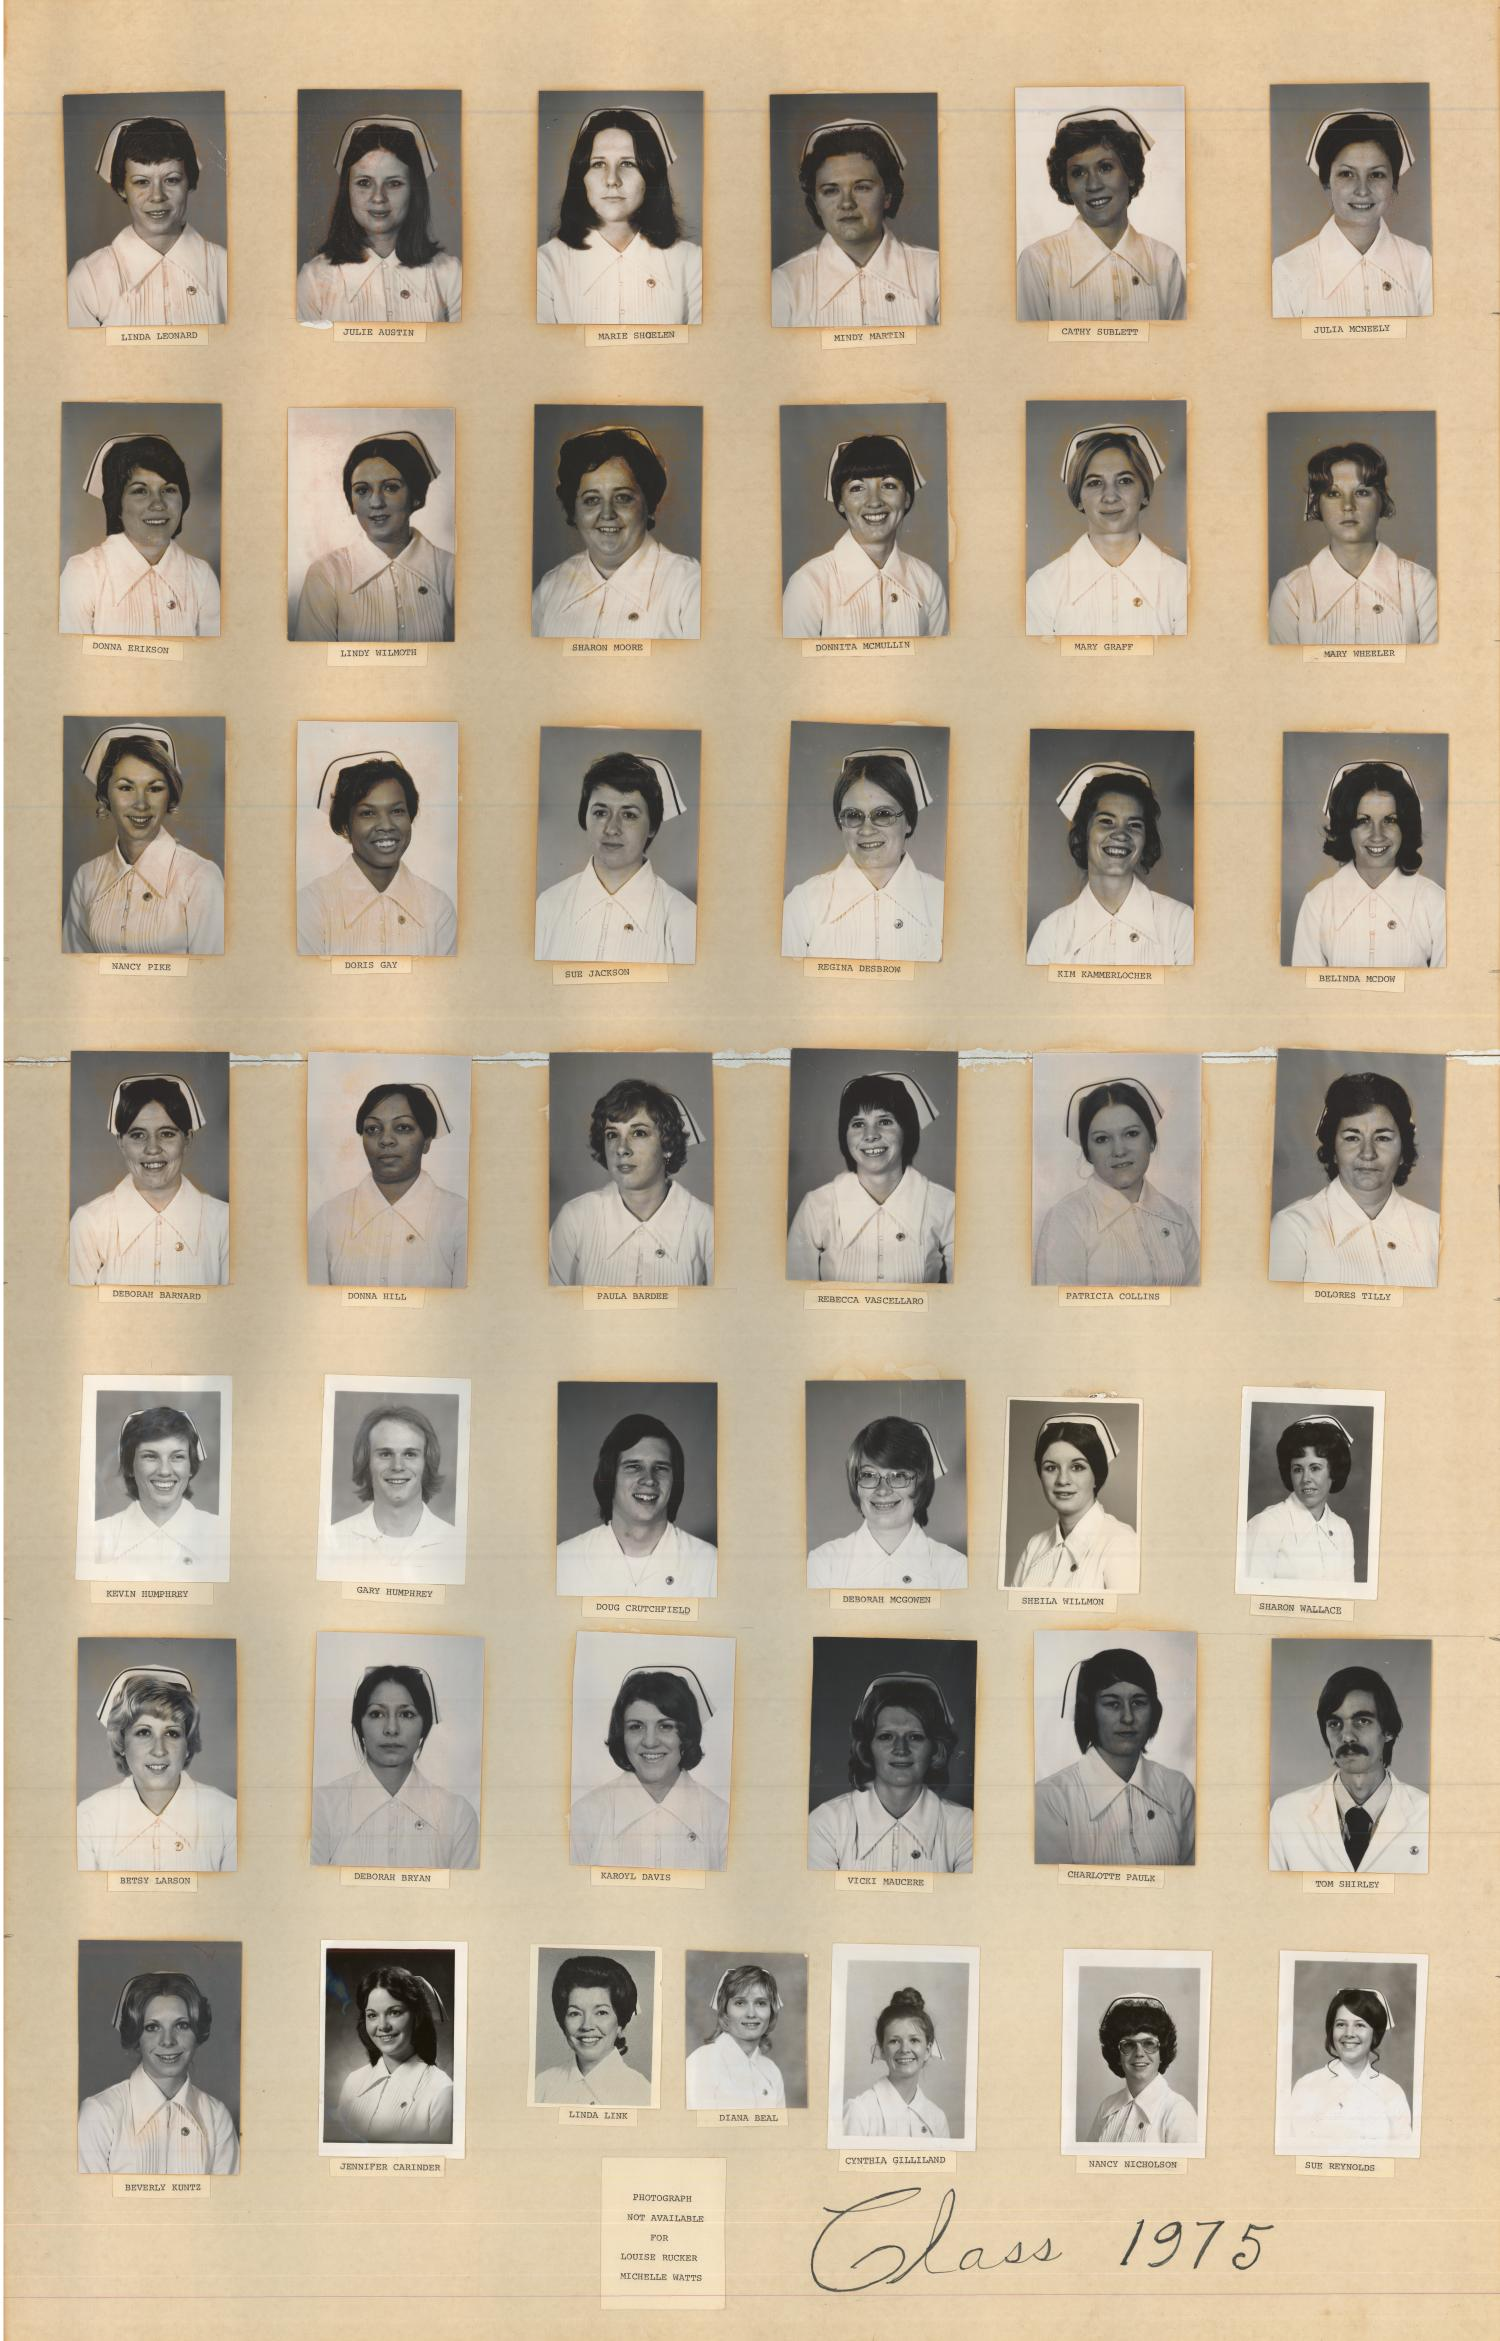 St. Anthony School of Nursing Class of 1975                                                                                                      [Sequence #]: 1 of 1